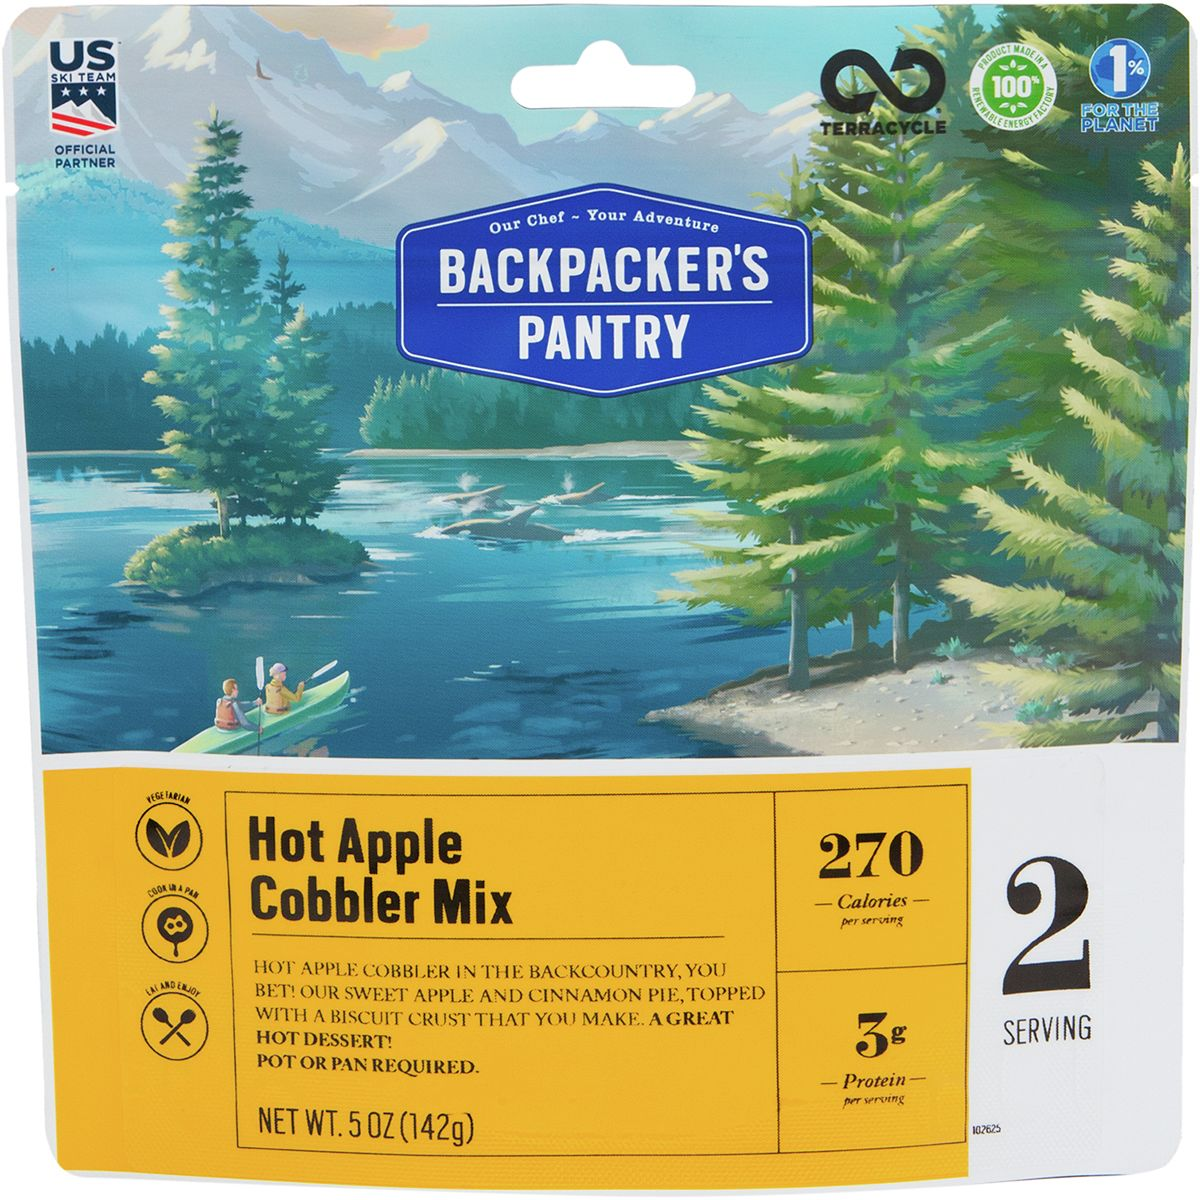 Backpacker's Pantry Hot Apple Cobbler